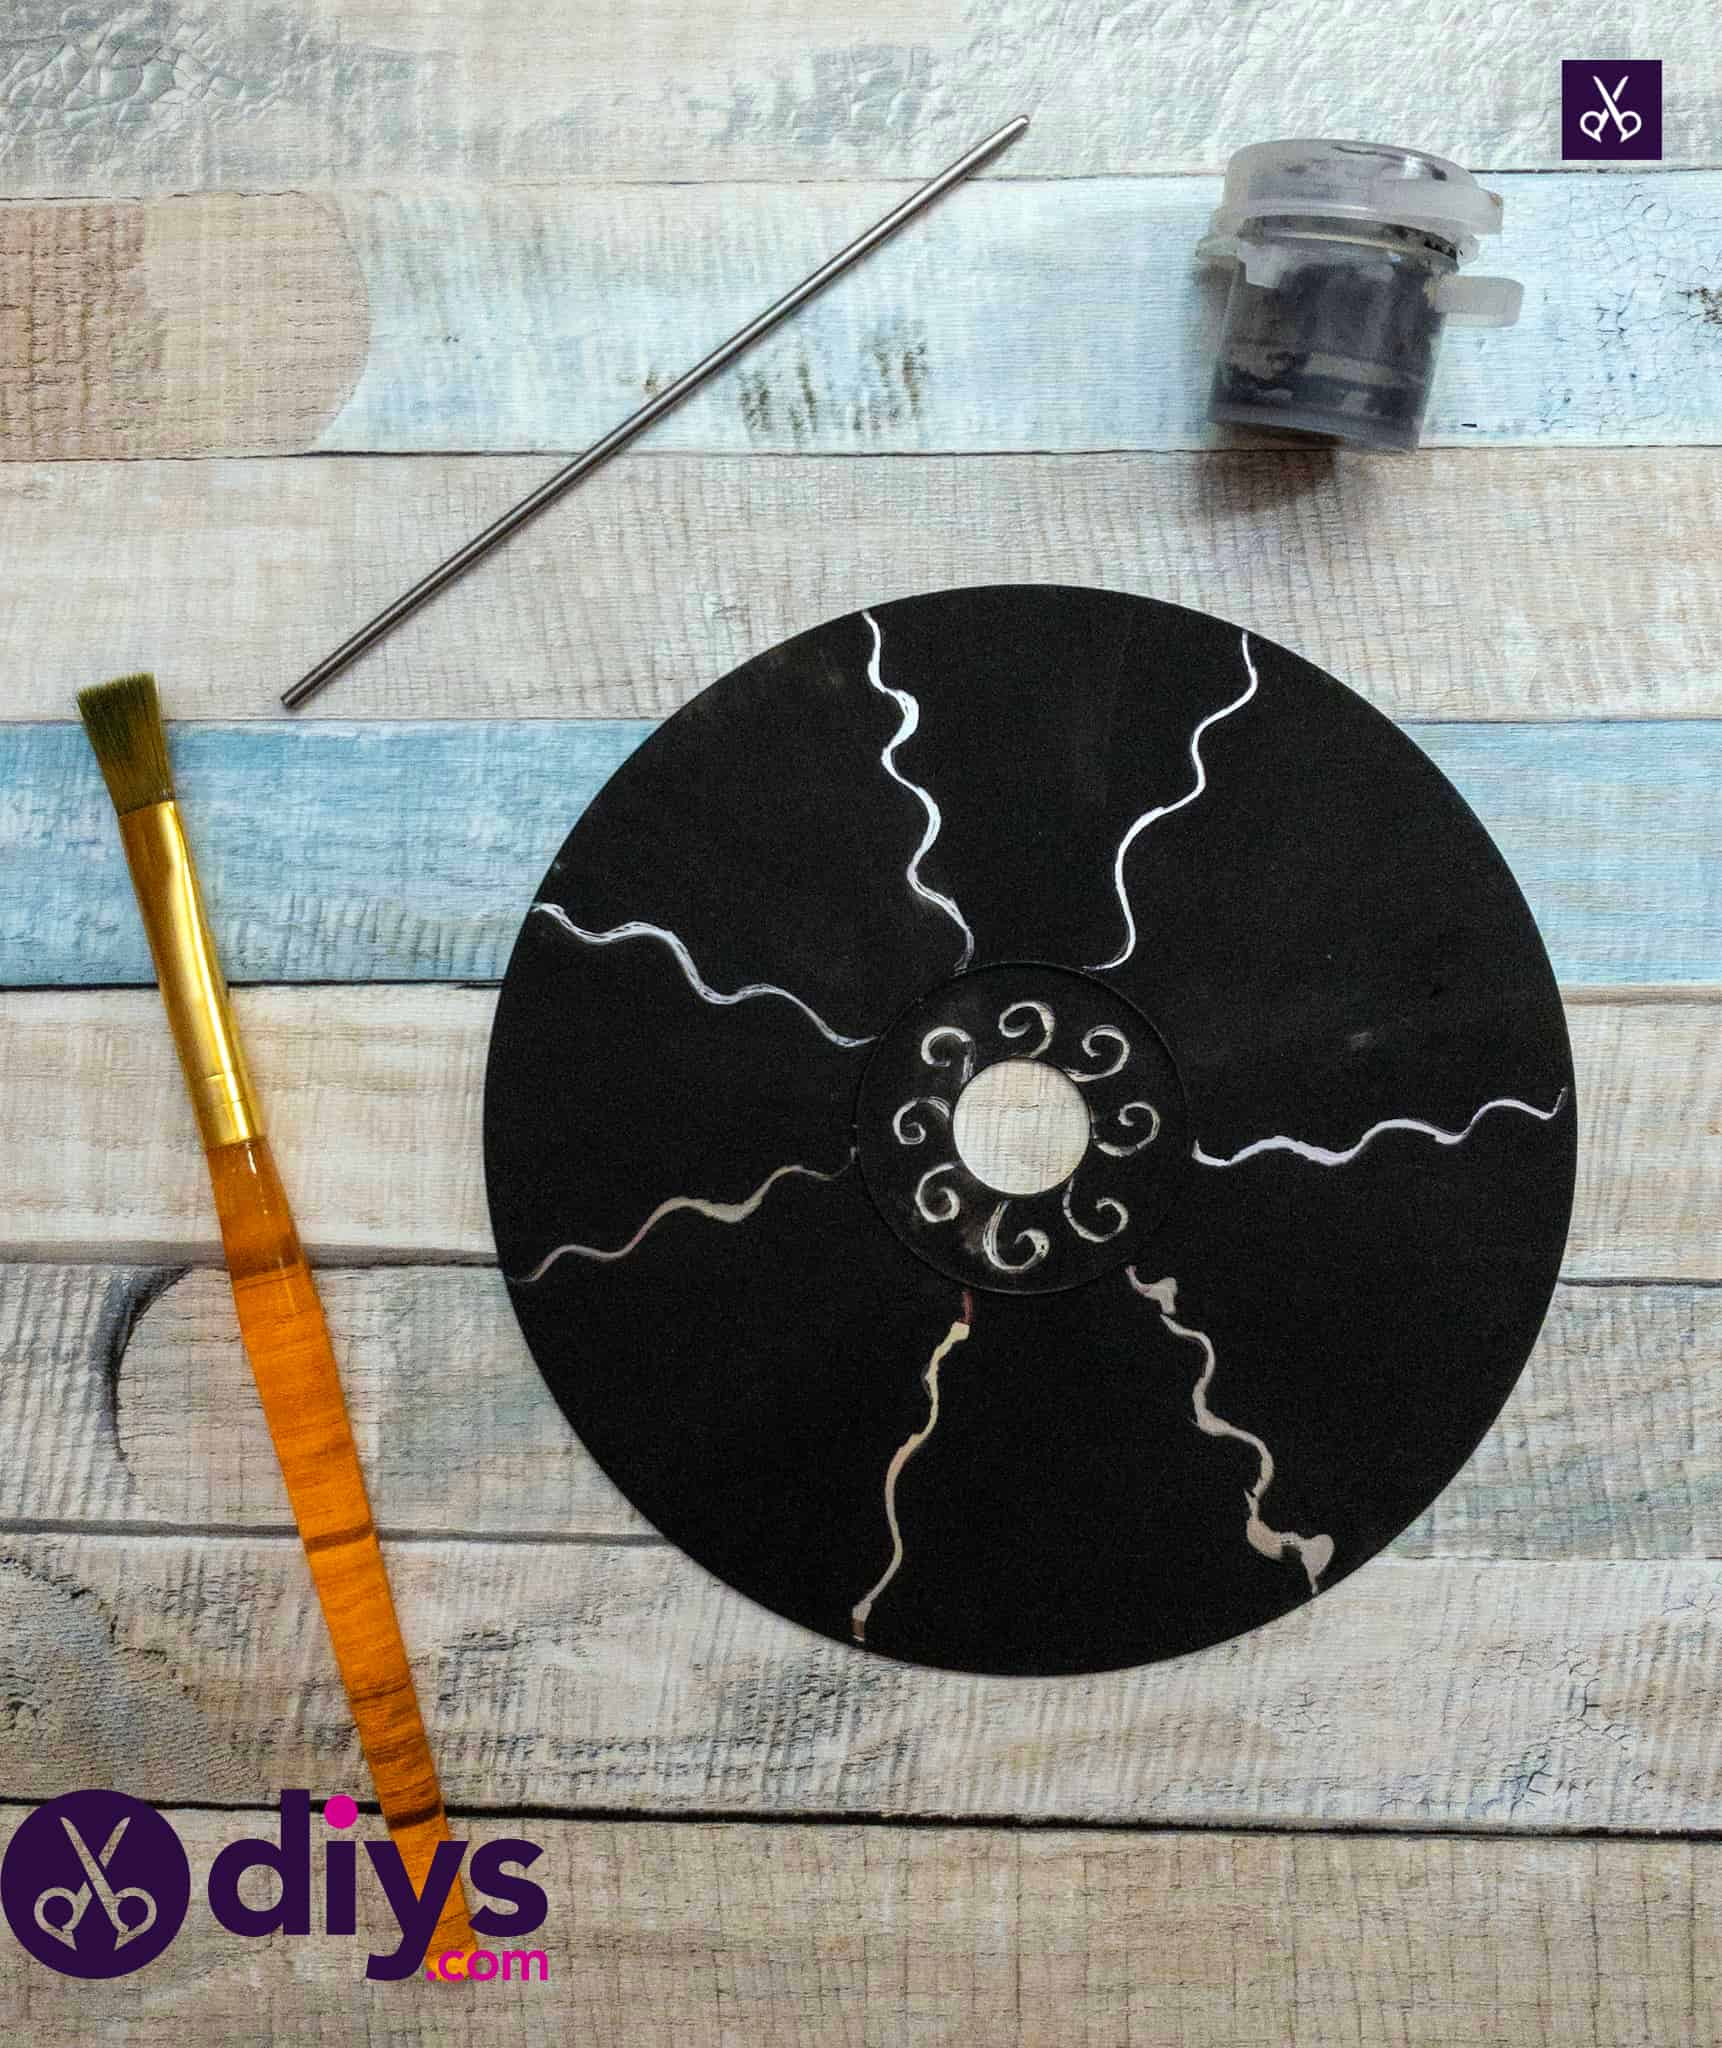 Materials how to make recycled cd art